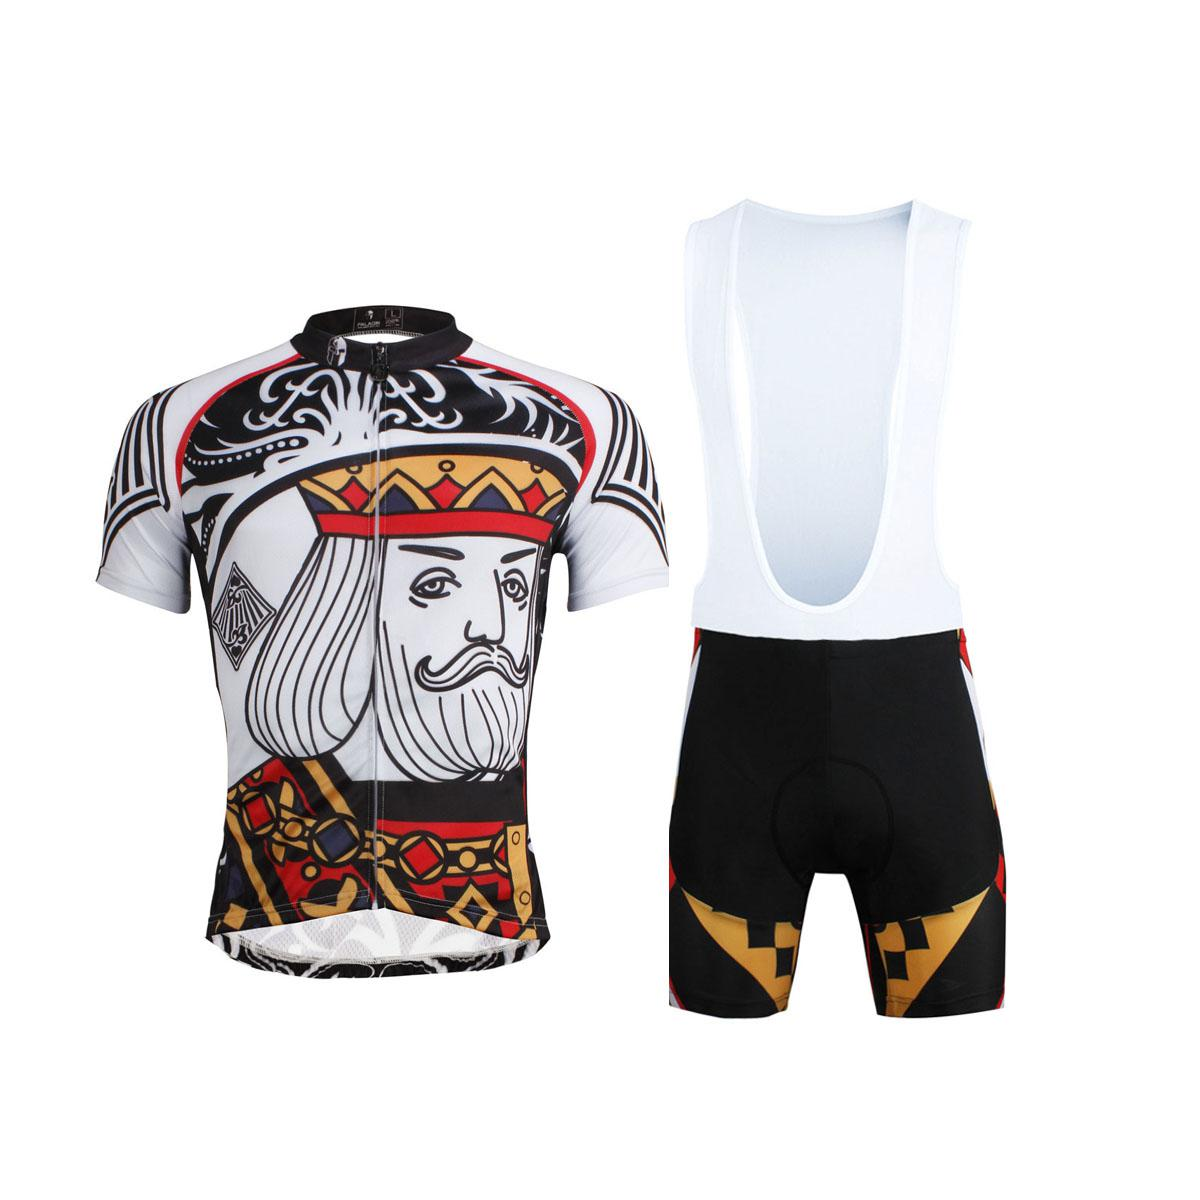 8b6835583 2016 New Arrival Poker Diamond Cards Summer Cycling Jersey Sets Breathable  Quick Dry Bike Bicycle Jersey Bib And Non Bib Pants Biking Gear Womens  Cycling ...